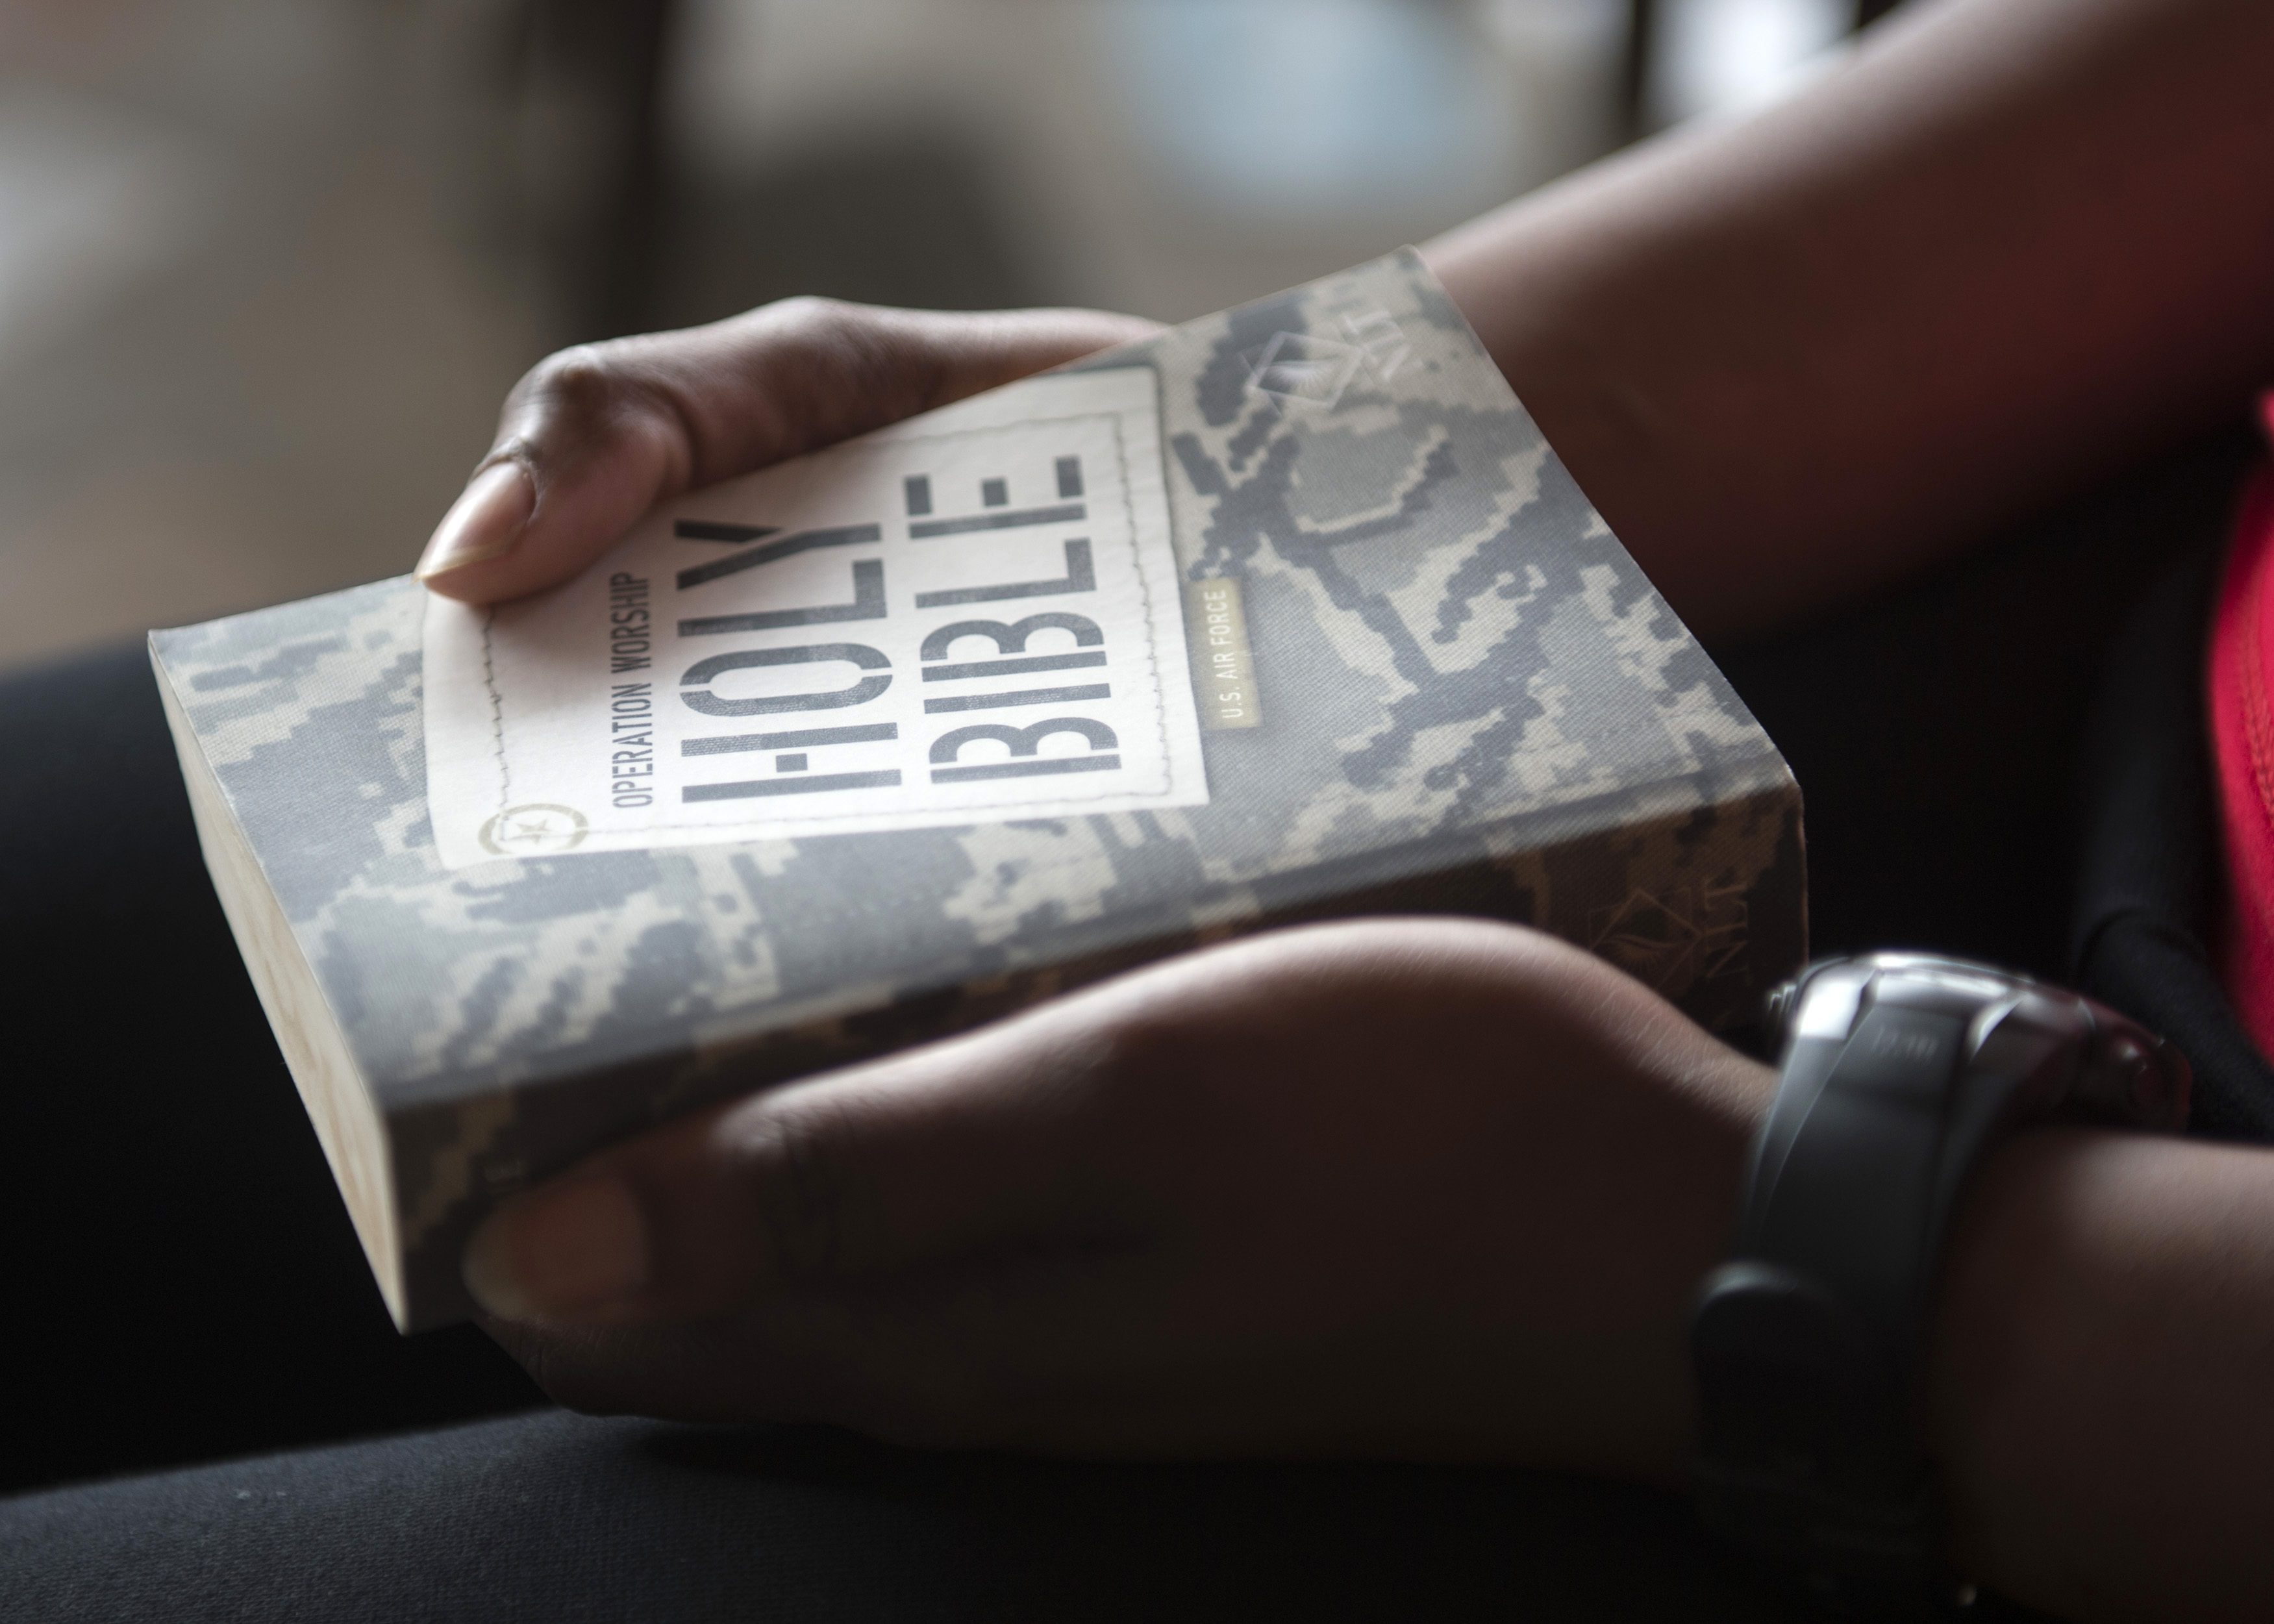 A Combined Joint Task Force-Horn of Africa service member holds a Bible during an Easter service provided by a CJTF-HOA Chaplain on Apr. 5, 2015 for members in the CJTF-HOA area of responsibility. CJTF-HOA Chaplains visit members throughout the CJTF-HOA area of responsibility at least once a month to provide religious services and encouragement. (U.S. Air Force photo by Staff Sgt. Kevin Iinuma)